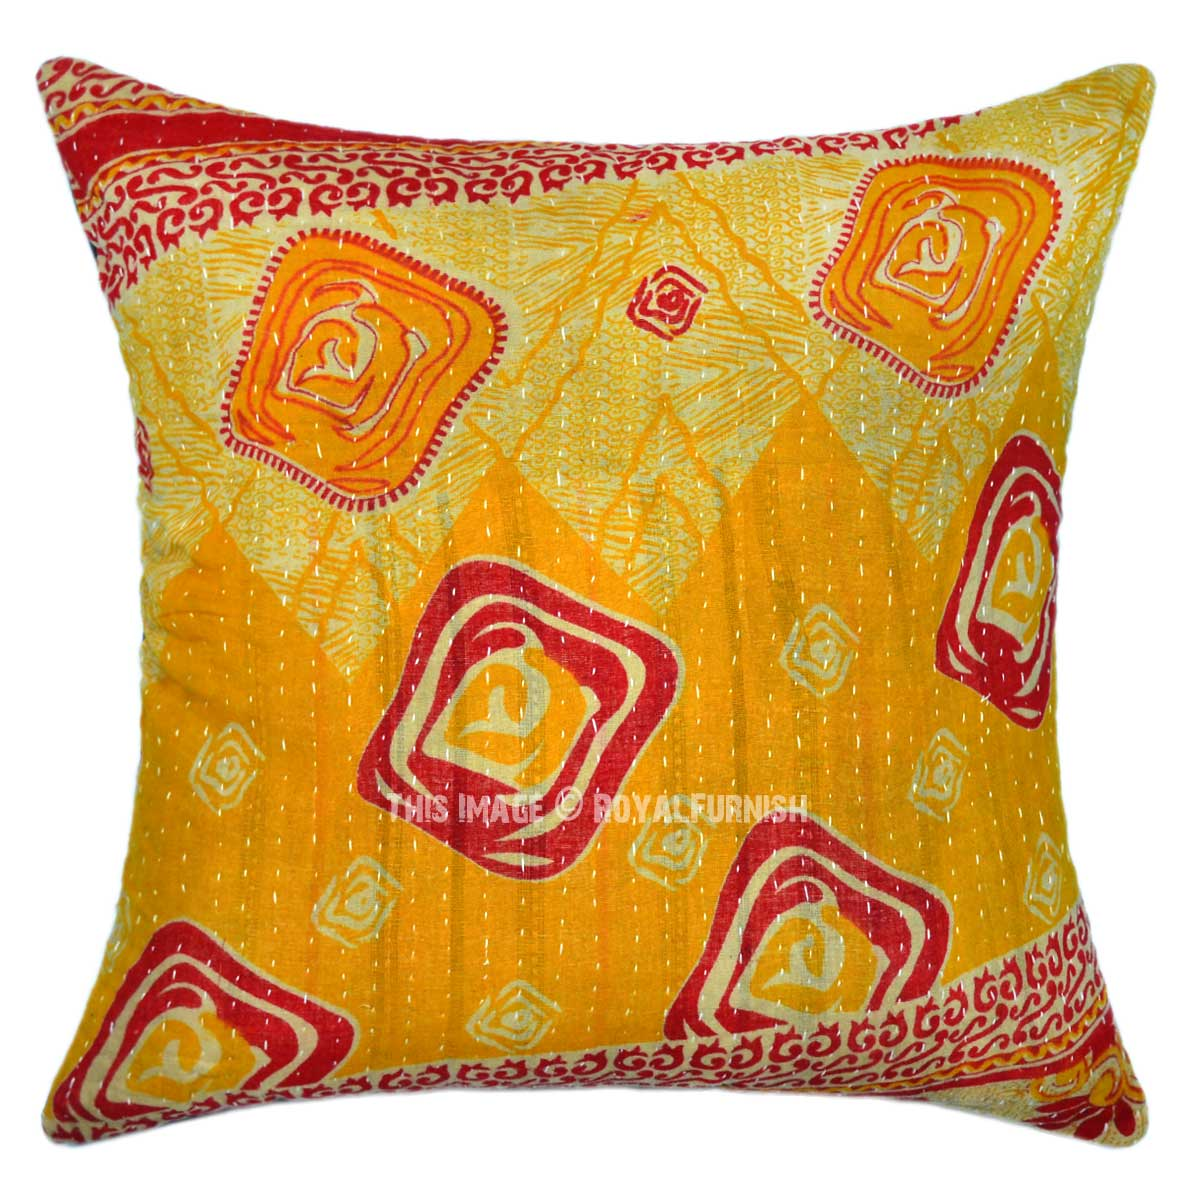 Throw Pillow Cover Fabric : Yellow Multi Abstract Old Fabric Vintage Kantha Throw Pillow Cover - RoyalFurnish.com